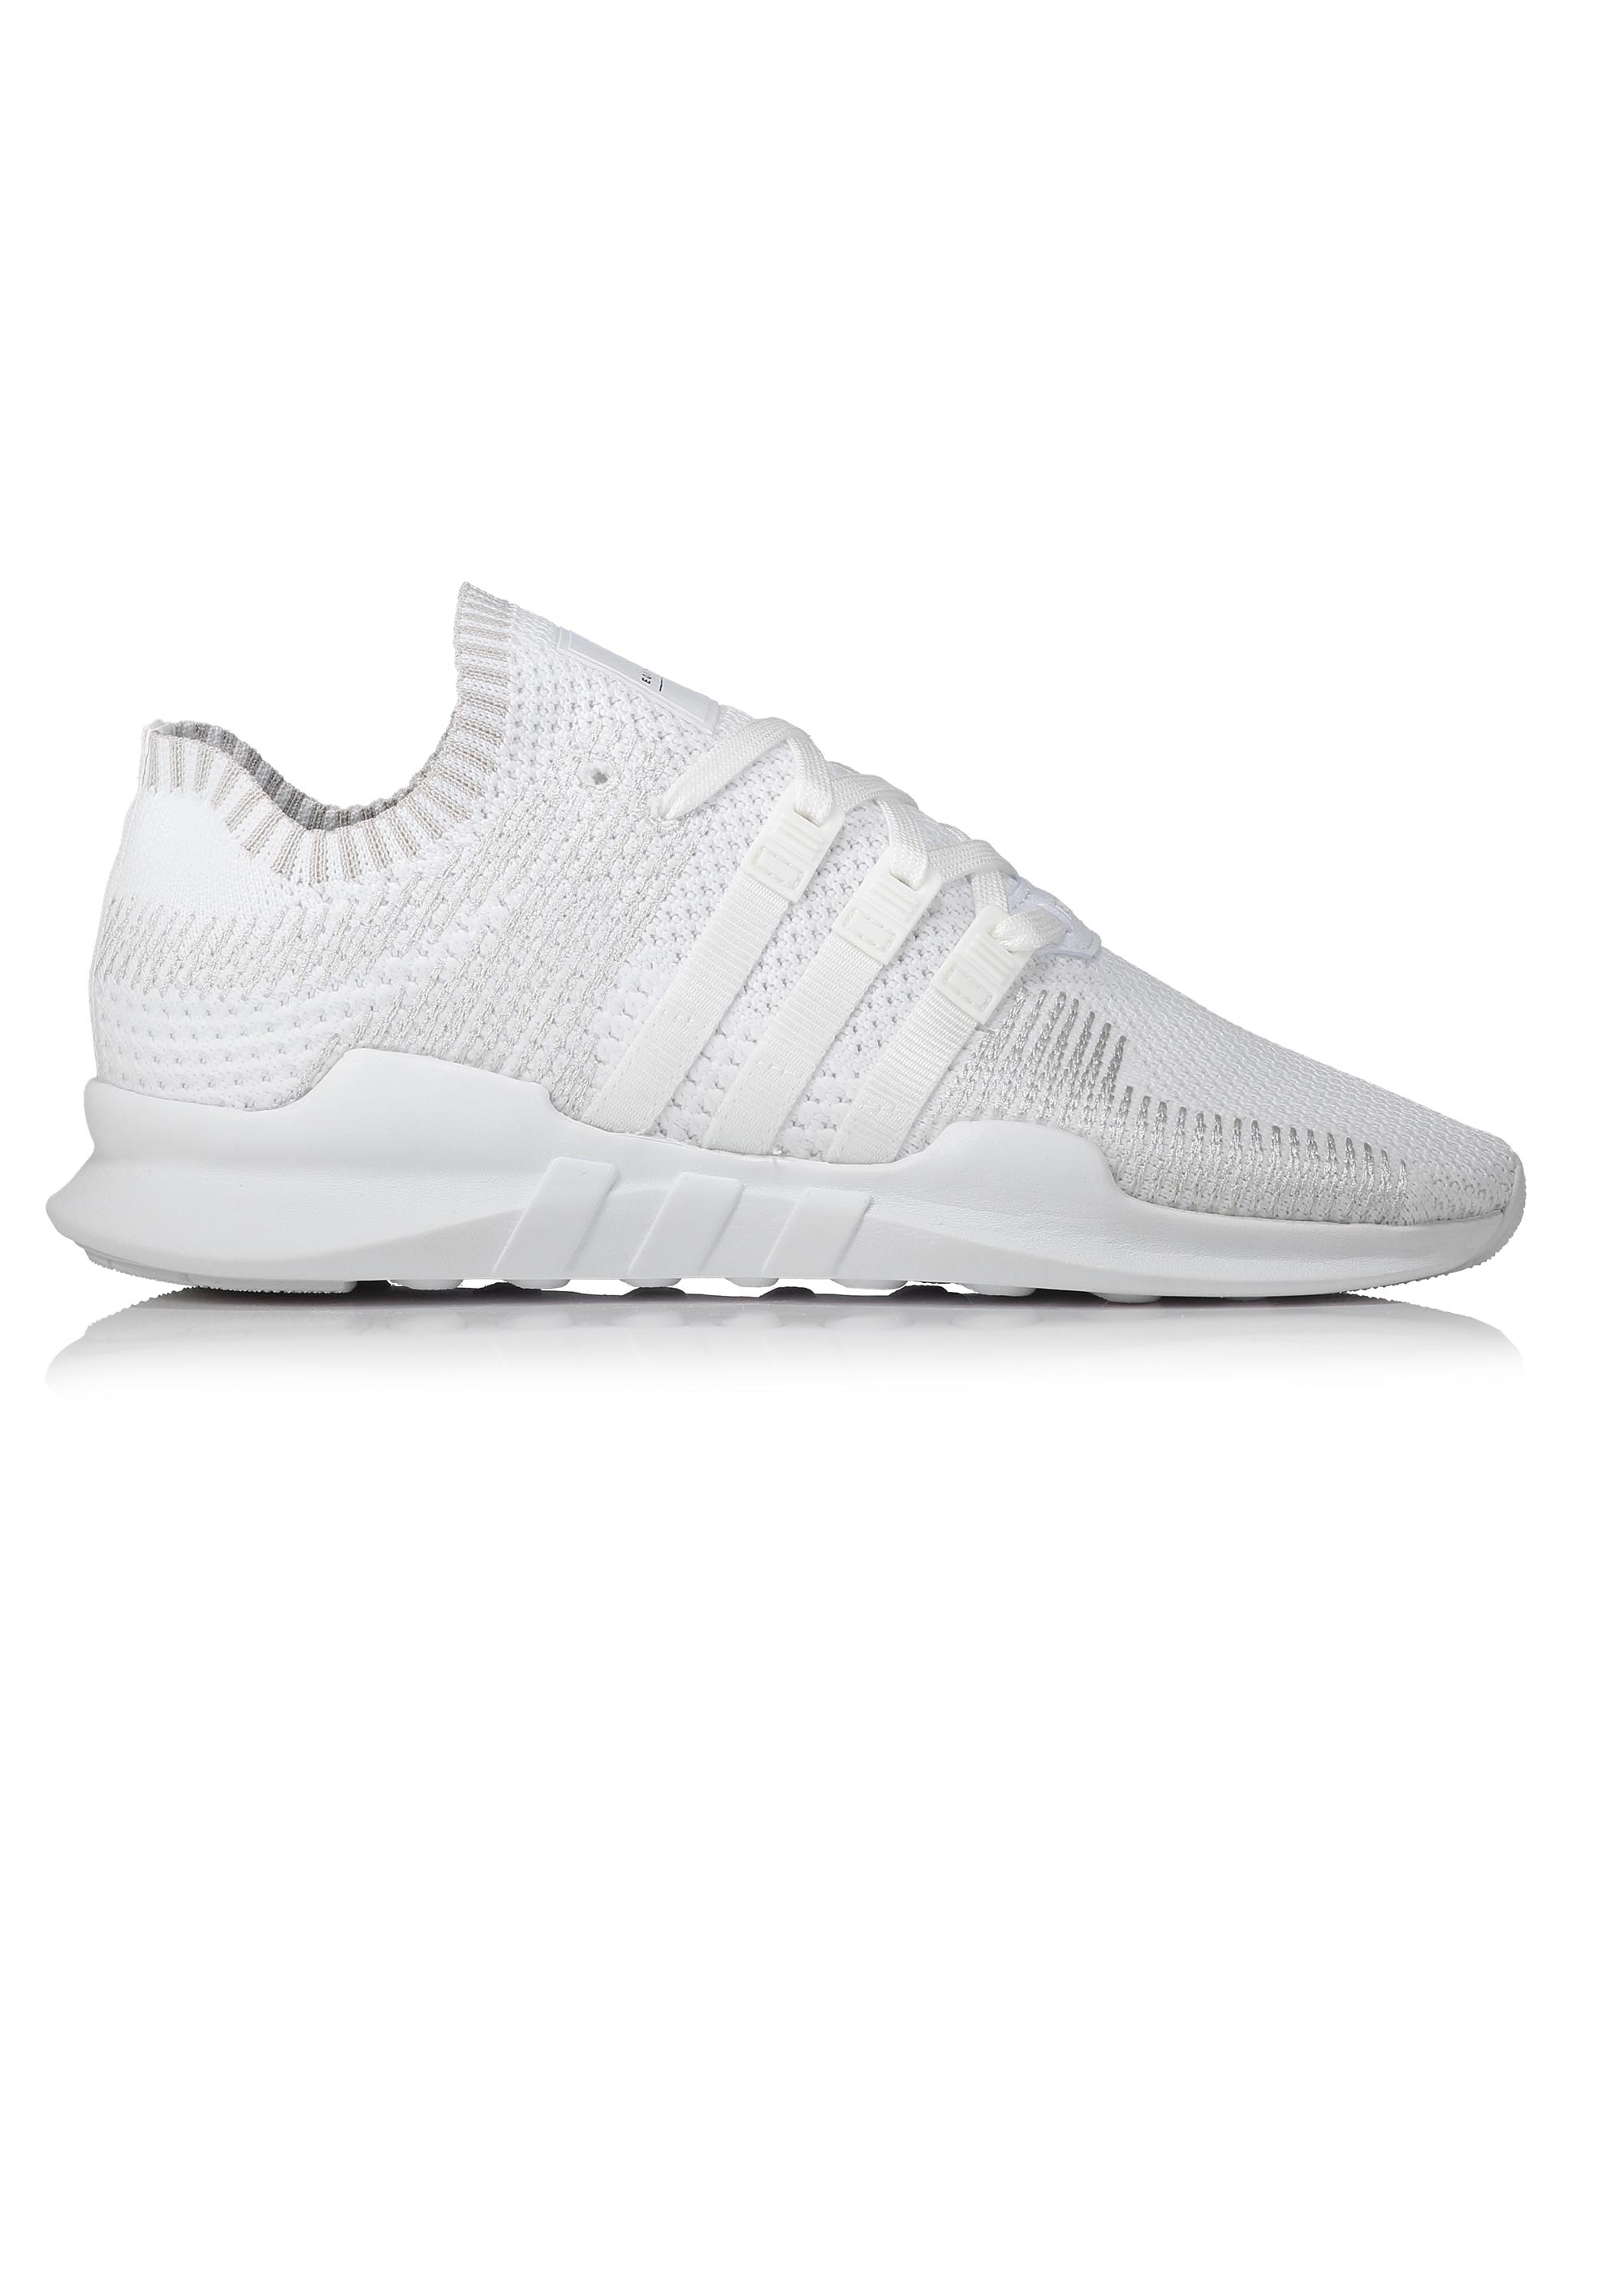 on sale 6f144 70978 adidas Originals Footwear EQT Support ADV PK - White